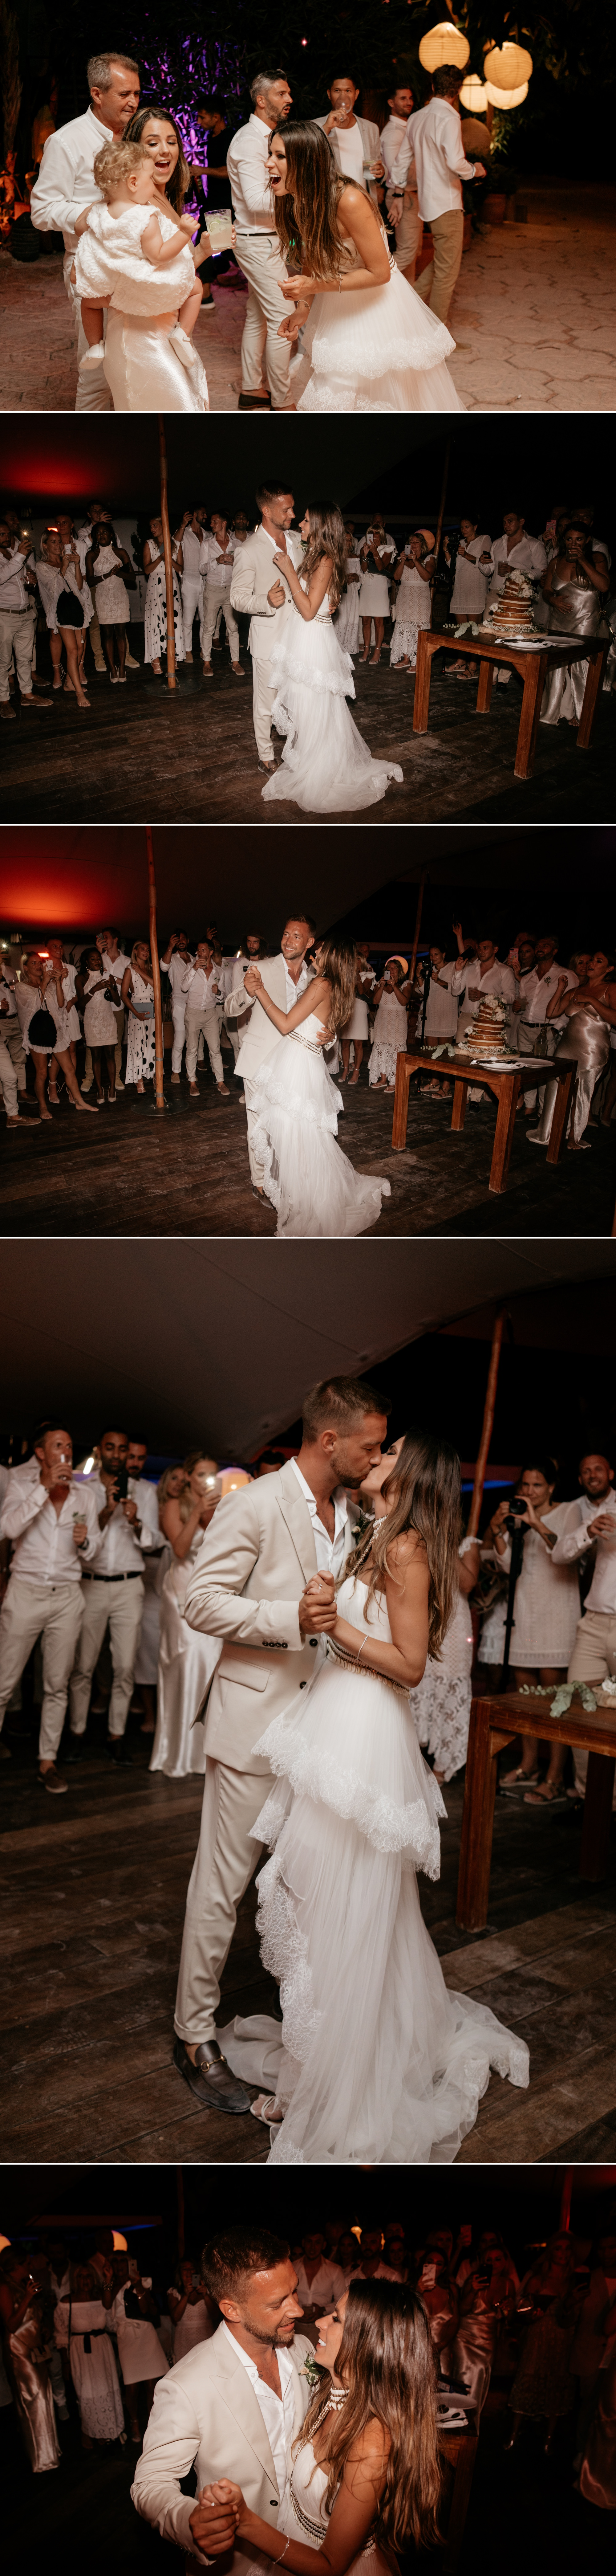 natural wedding photo destination la escollera ibiza 0104 1